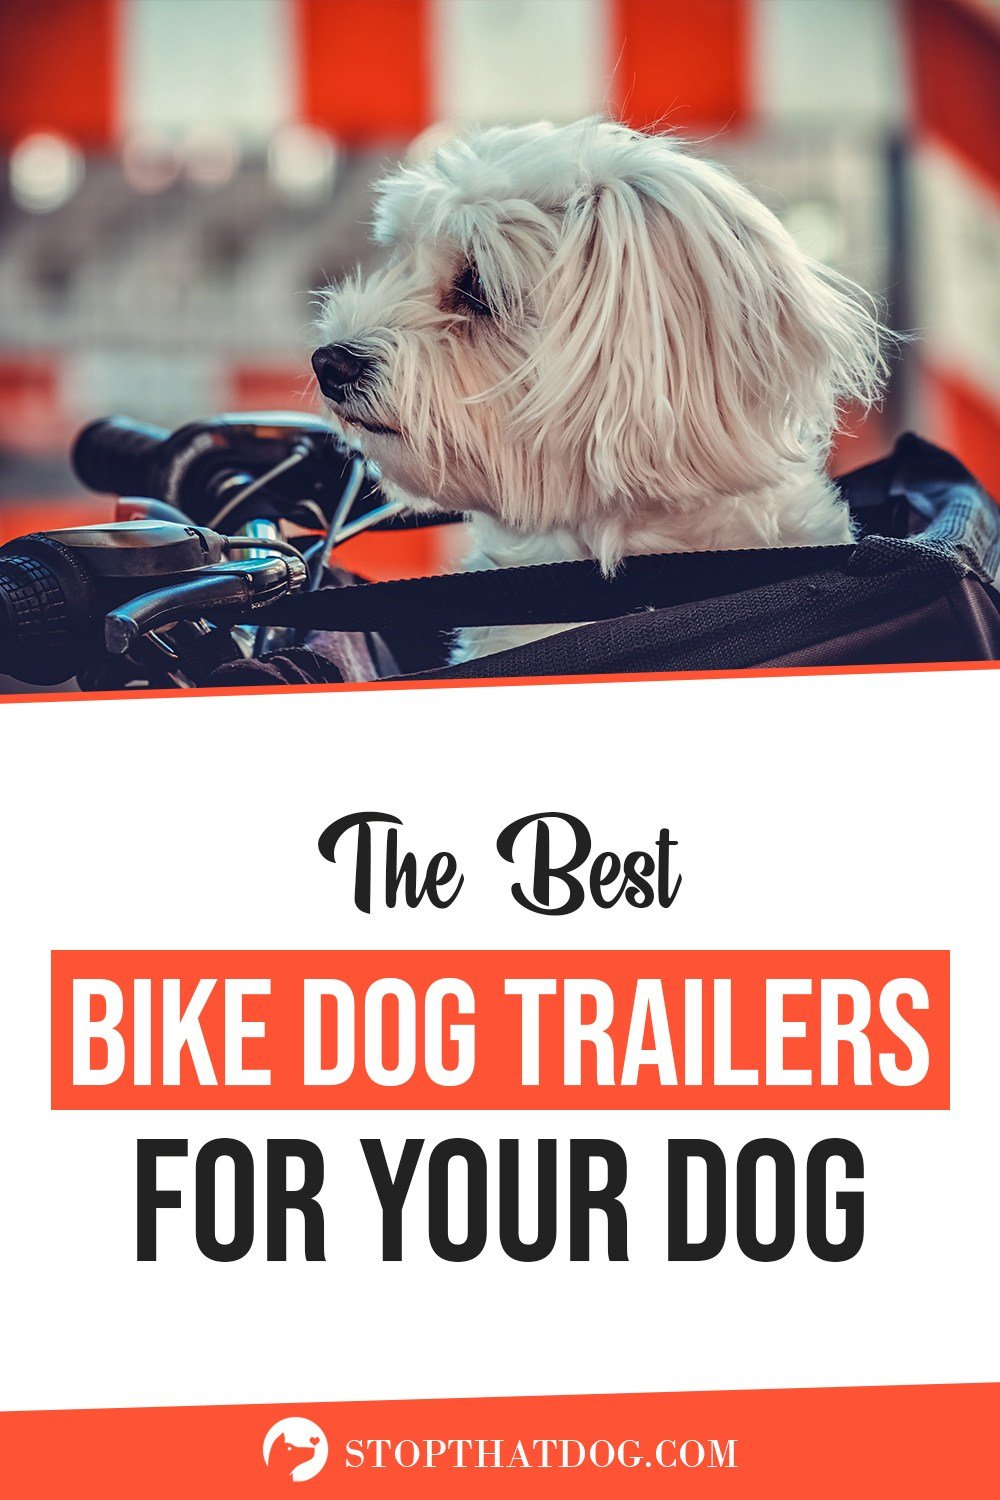 What's The Best Bike Trailer For My Dog In 2020? Our In-Depth Guide